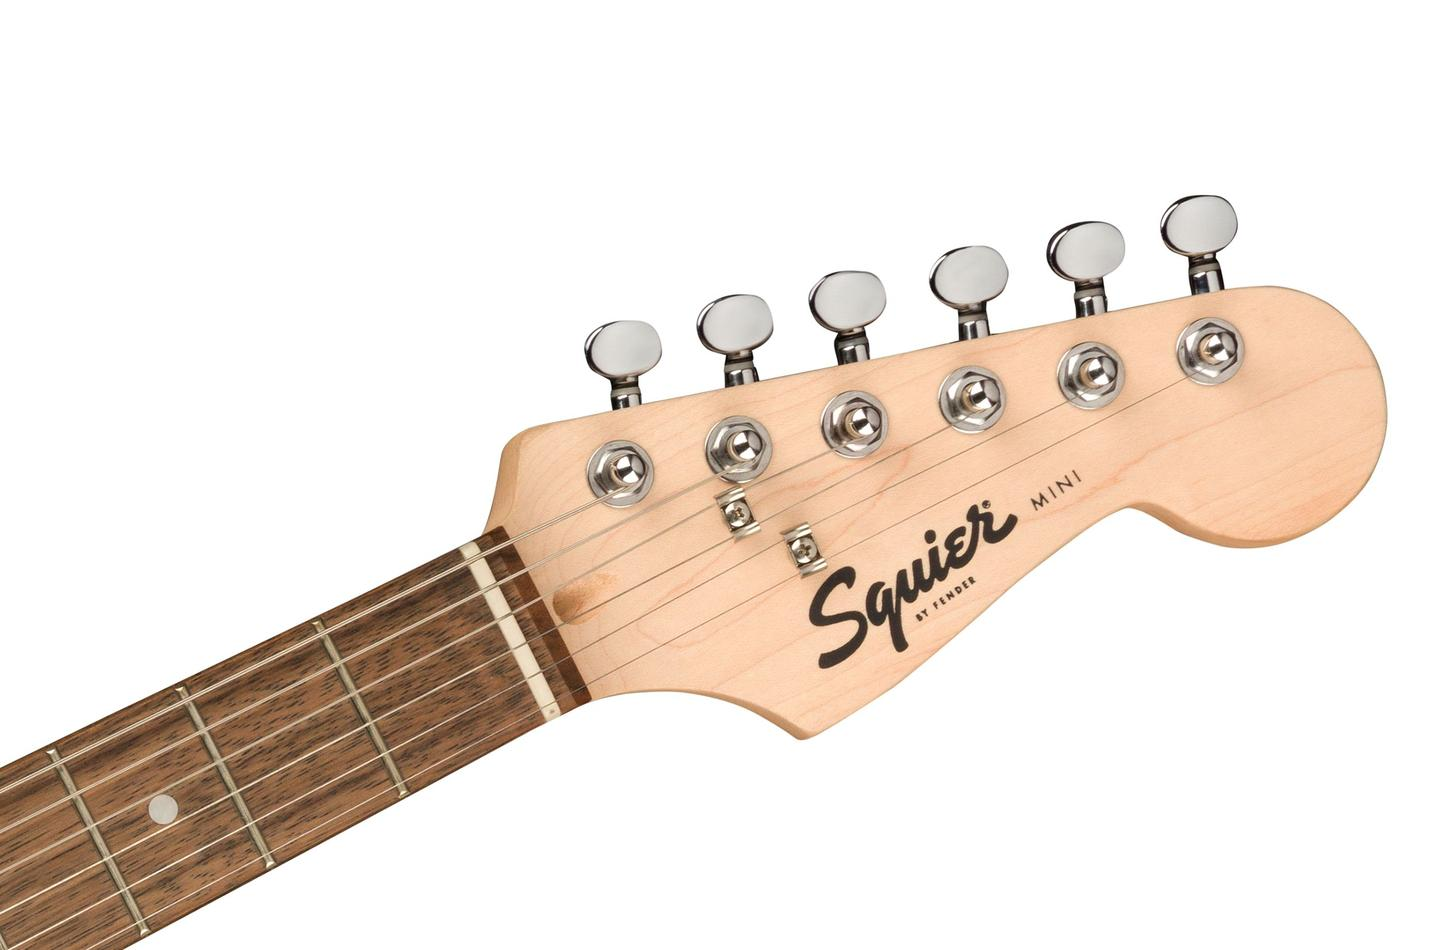 In case you couldn't tell that this is a Mini guitar, it's written on the headstock